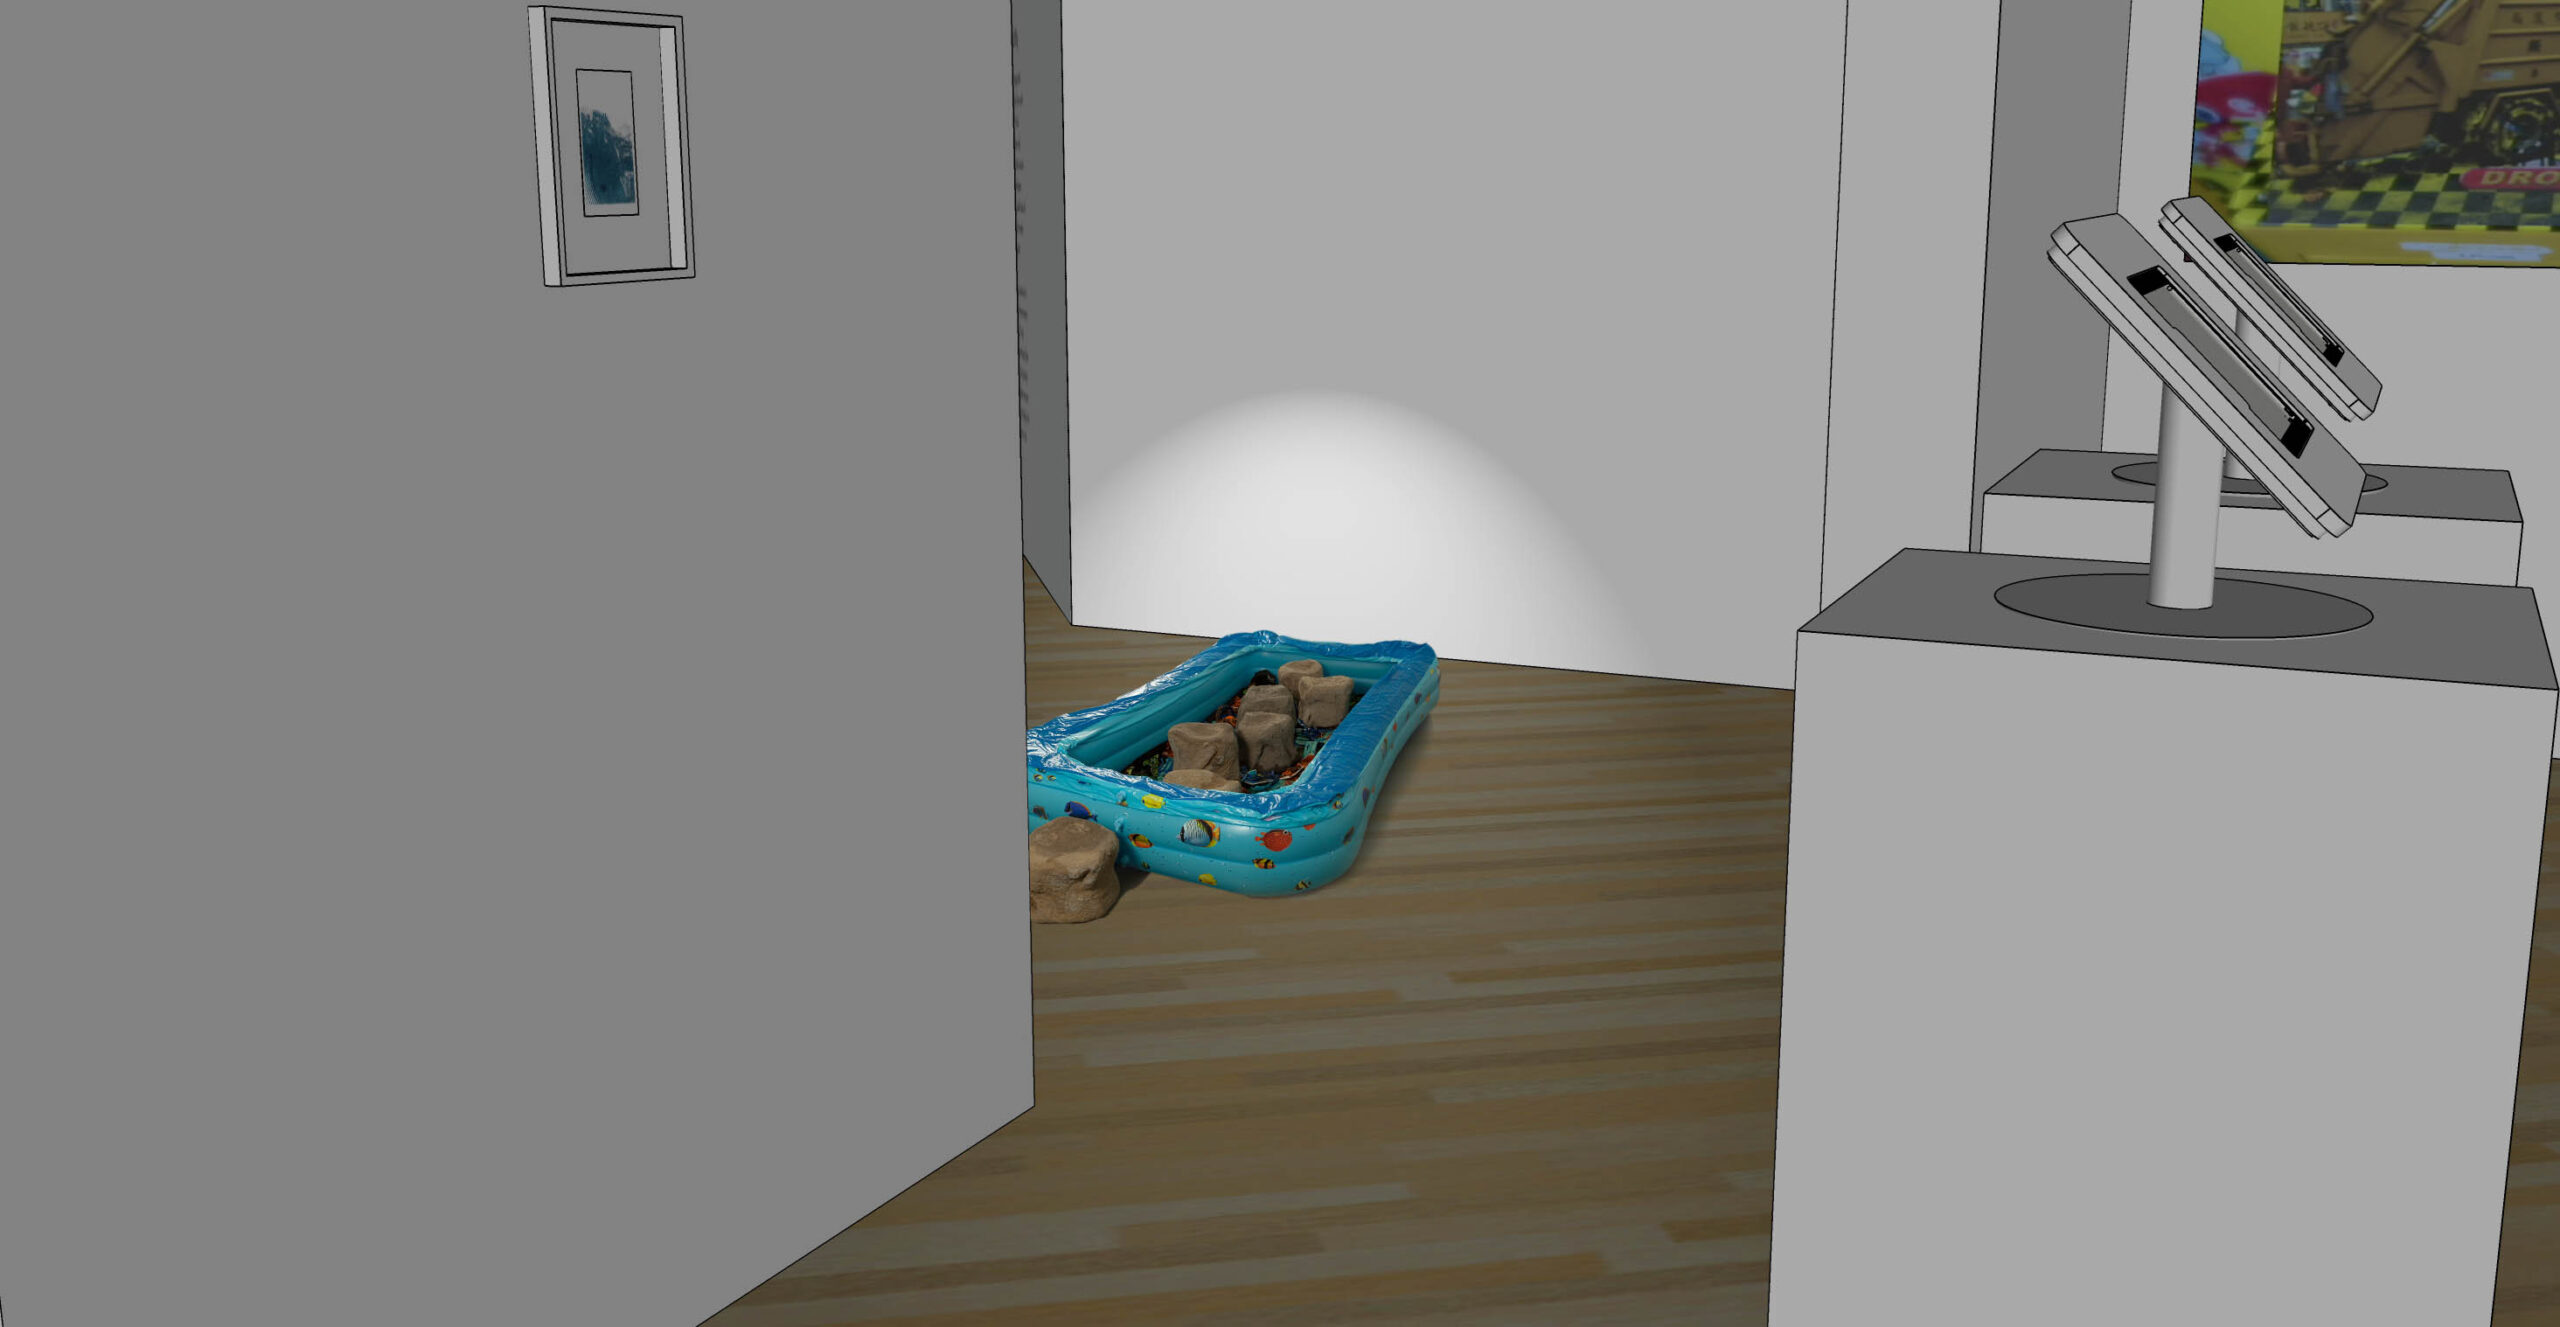 Installation view in the virtual gallery. Plastic pool is seen from a distance.